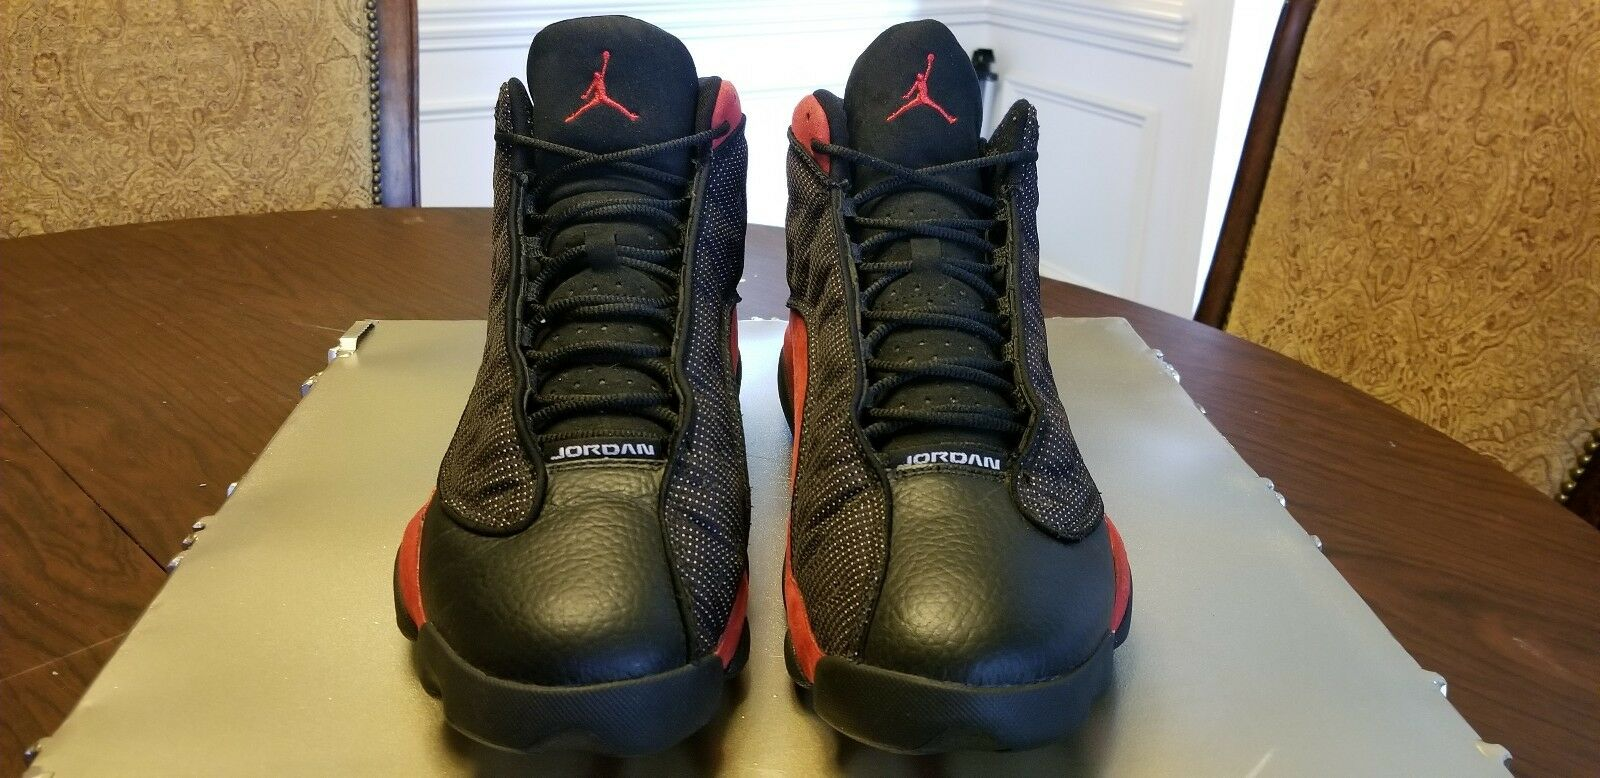 Nike Air Jordan Retro 13 Black/Varsity Red-White